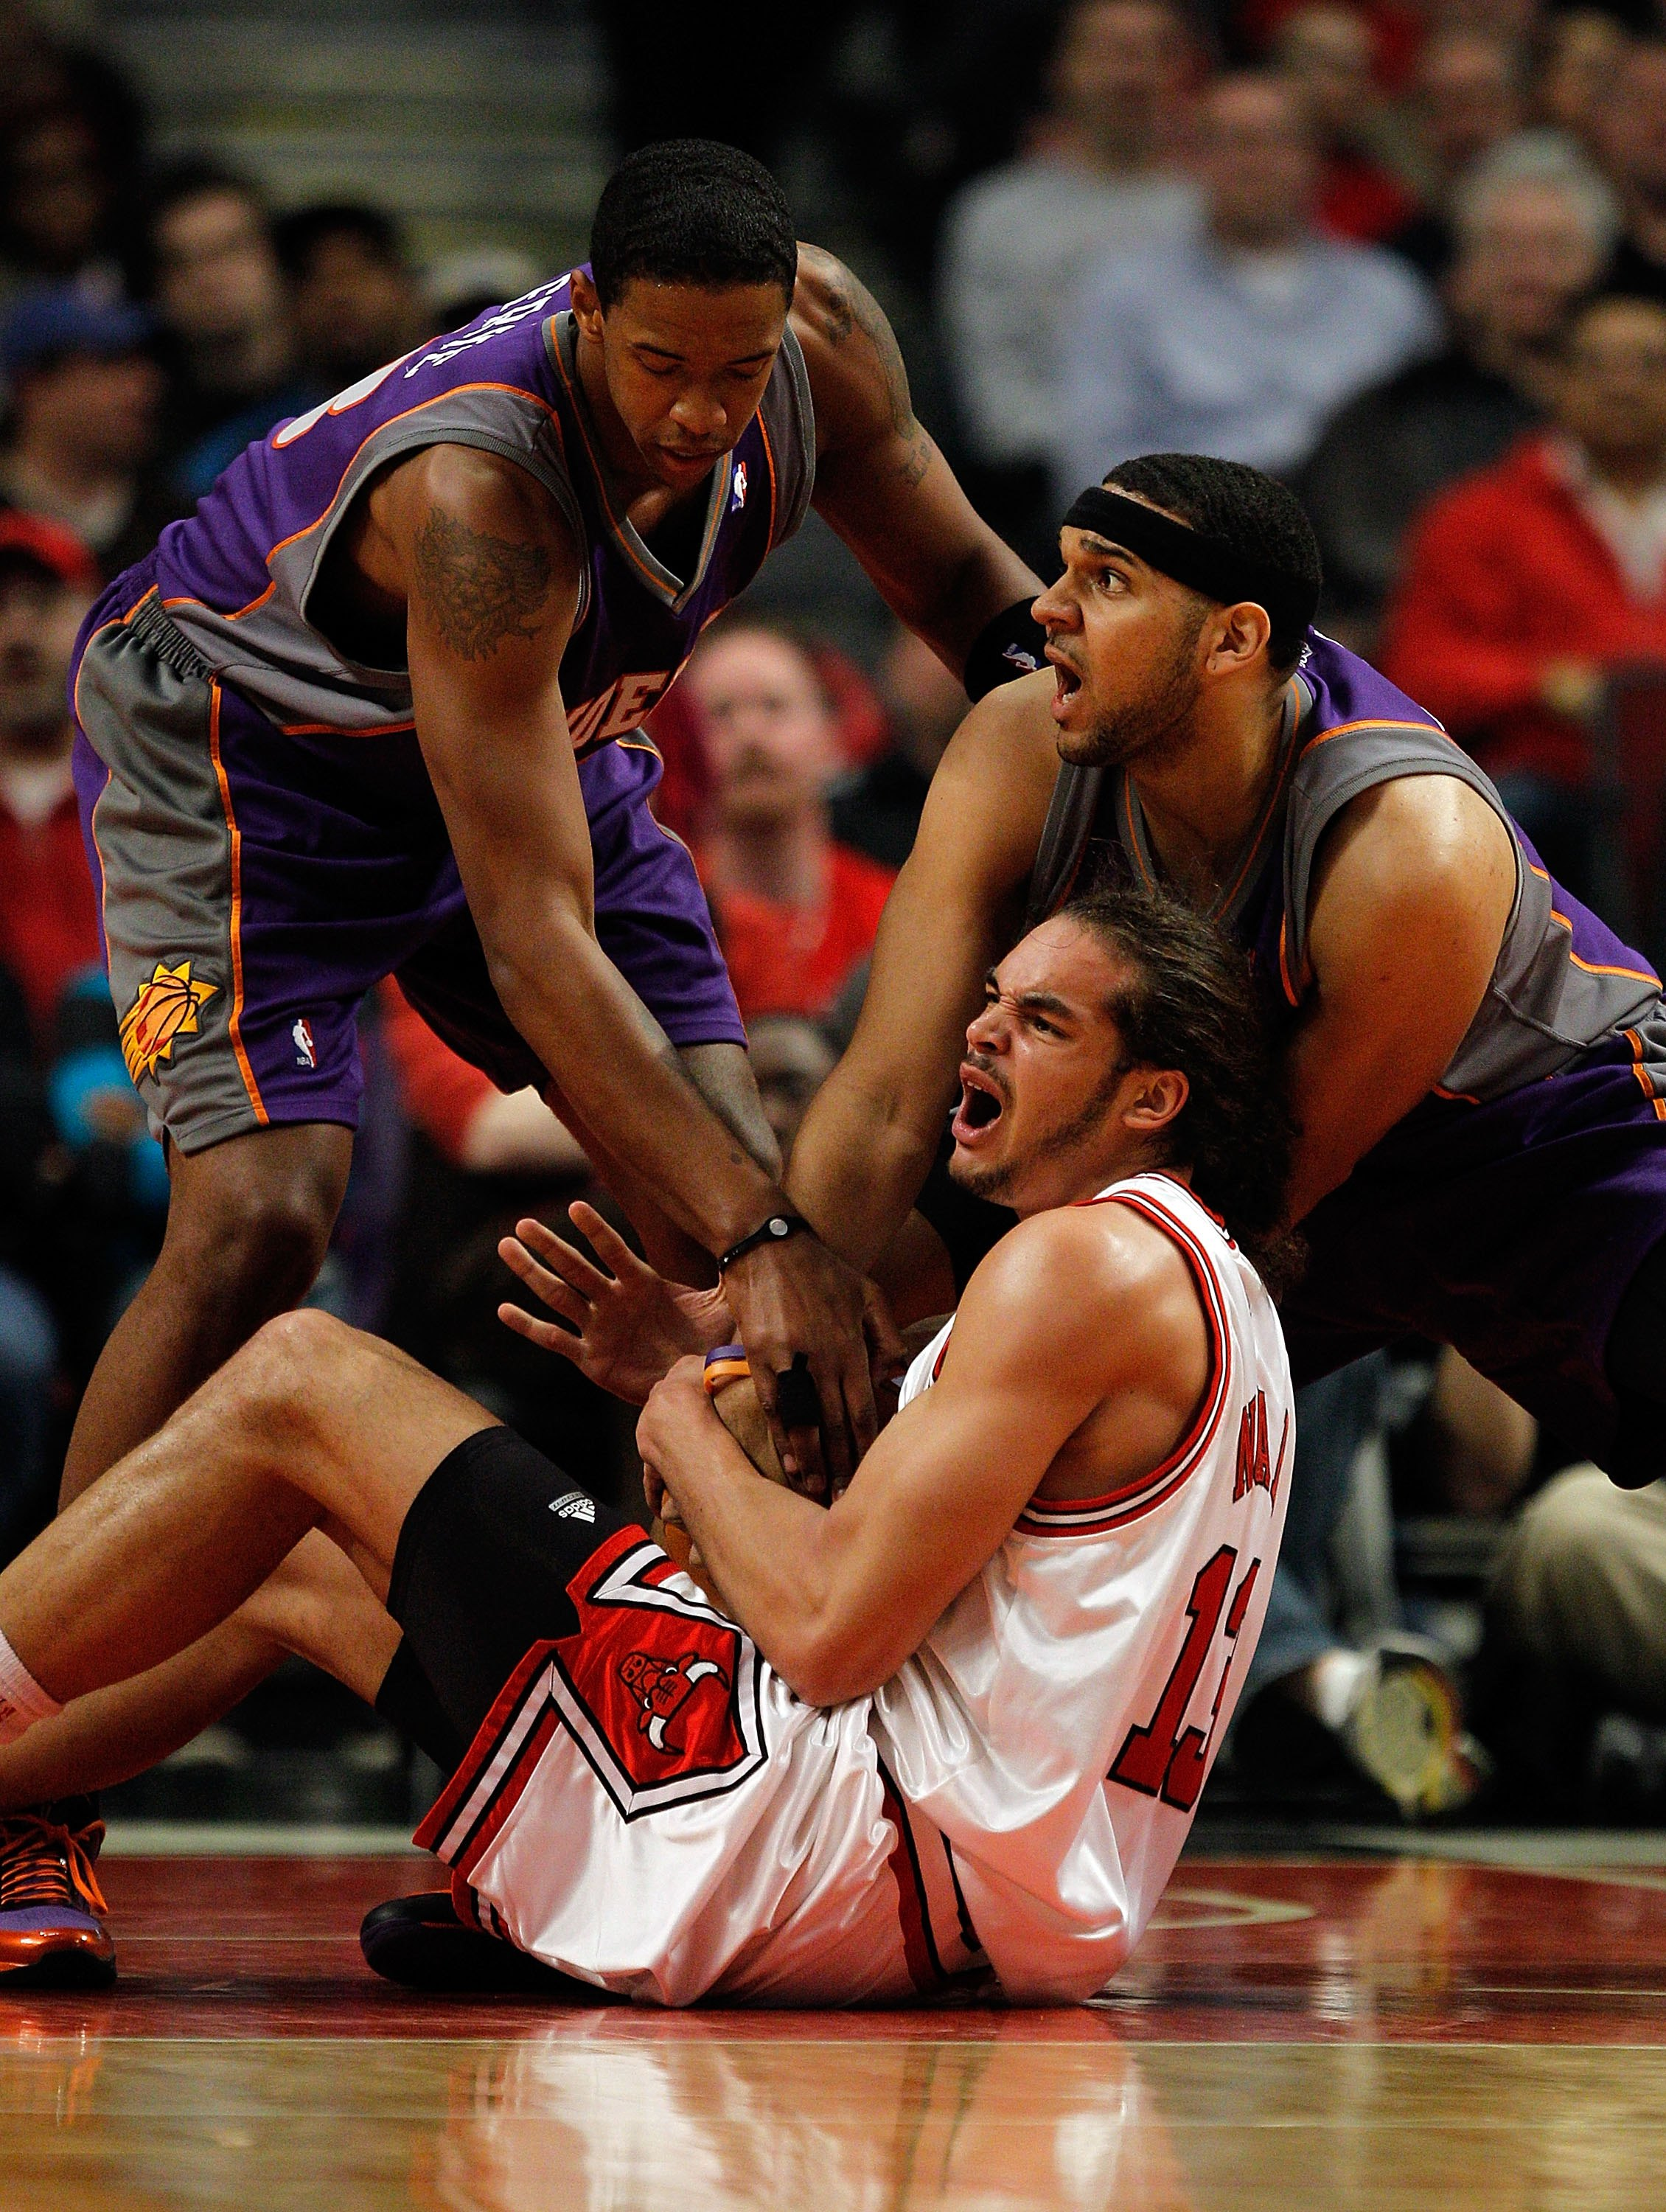 244f06d7c7e CHICAGO - MARCH 30  Joakim Noah  13 of the Chicago Bulls battles for the